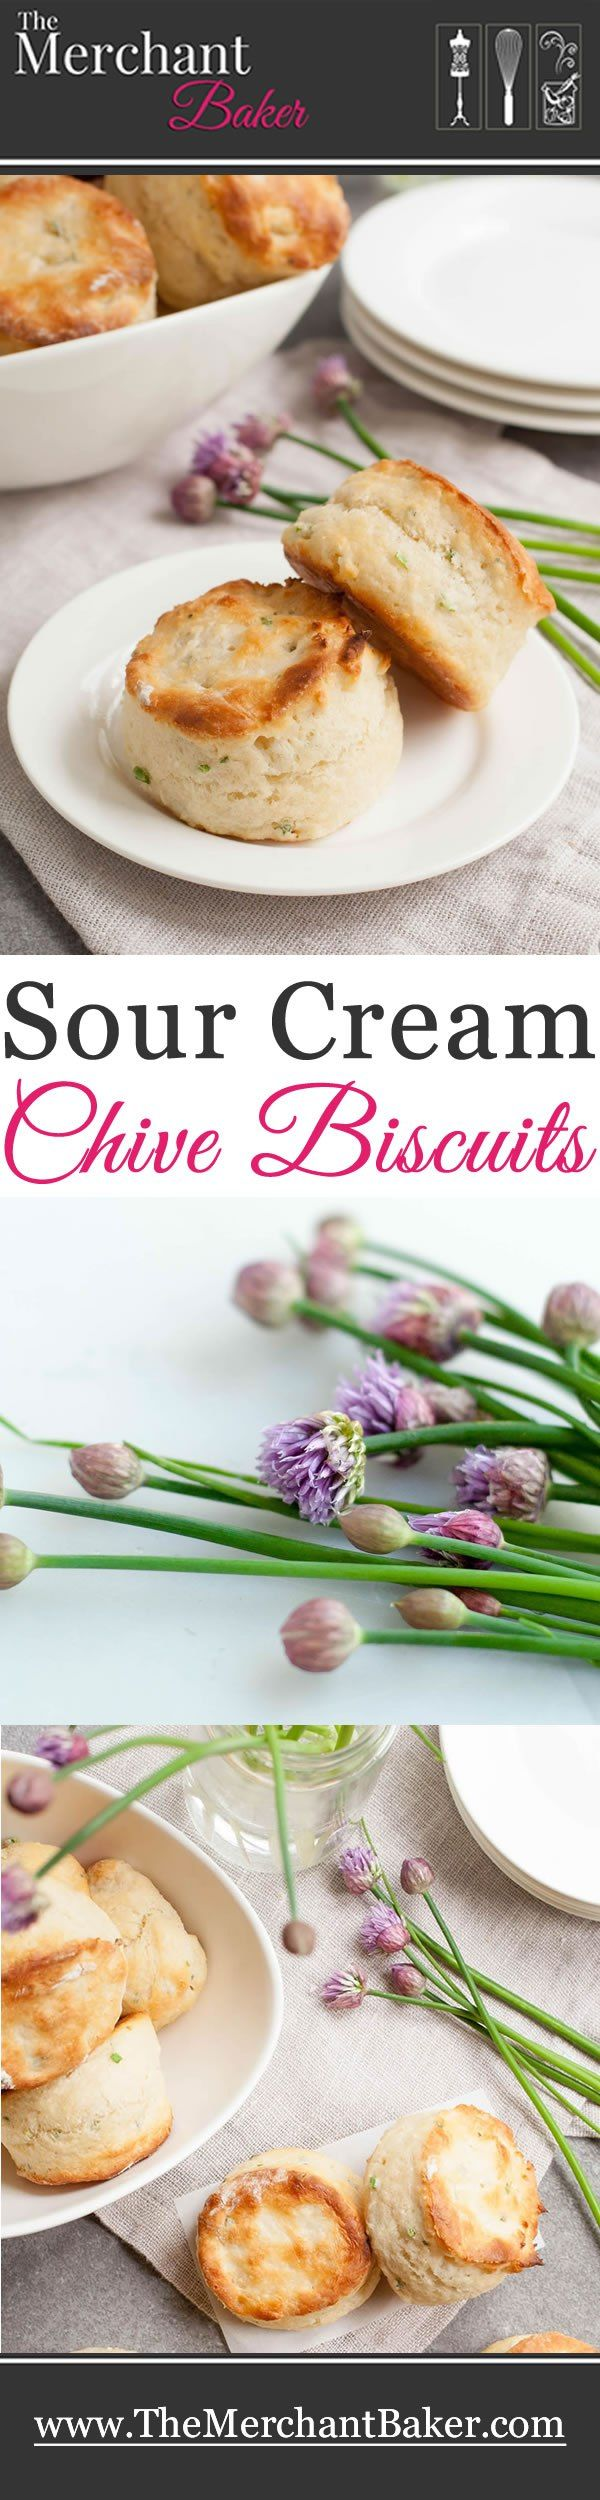 Sour Cream Chive Biscuits. Savory biscuits that are light and fluffy ...